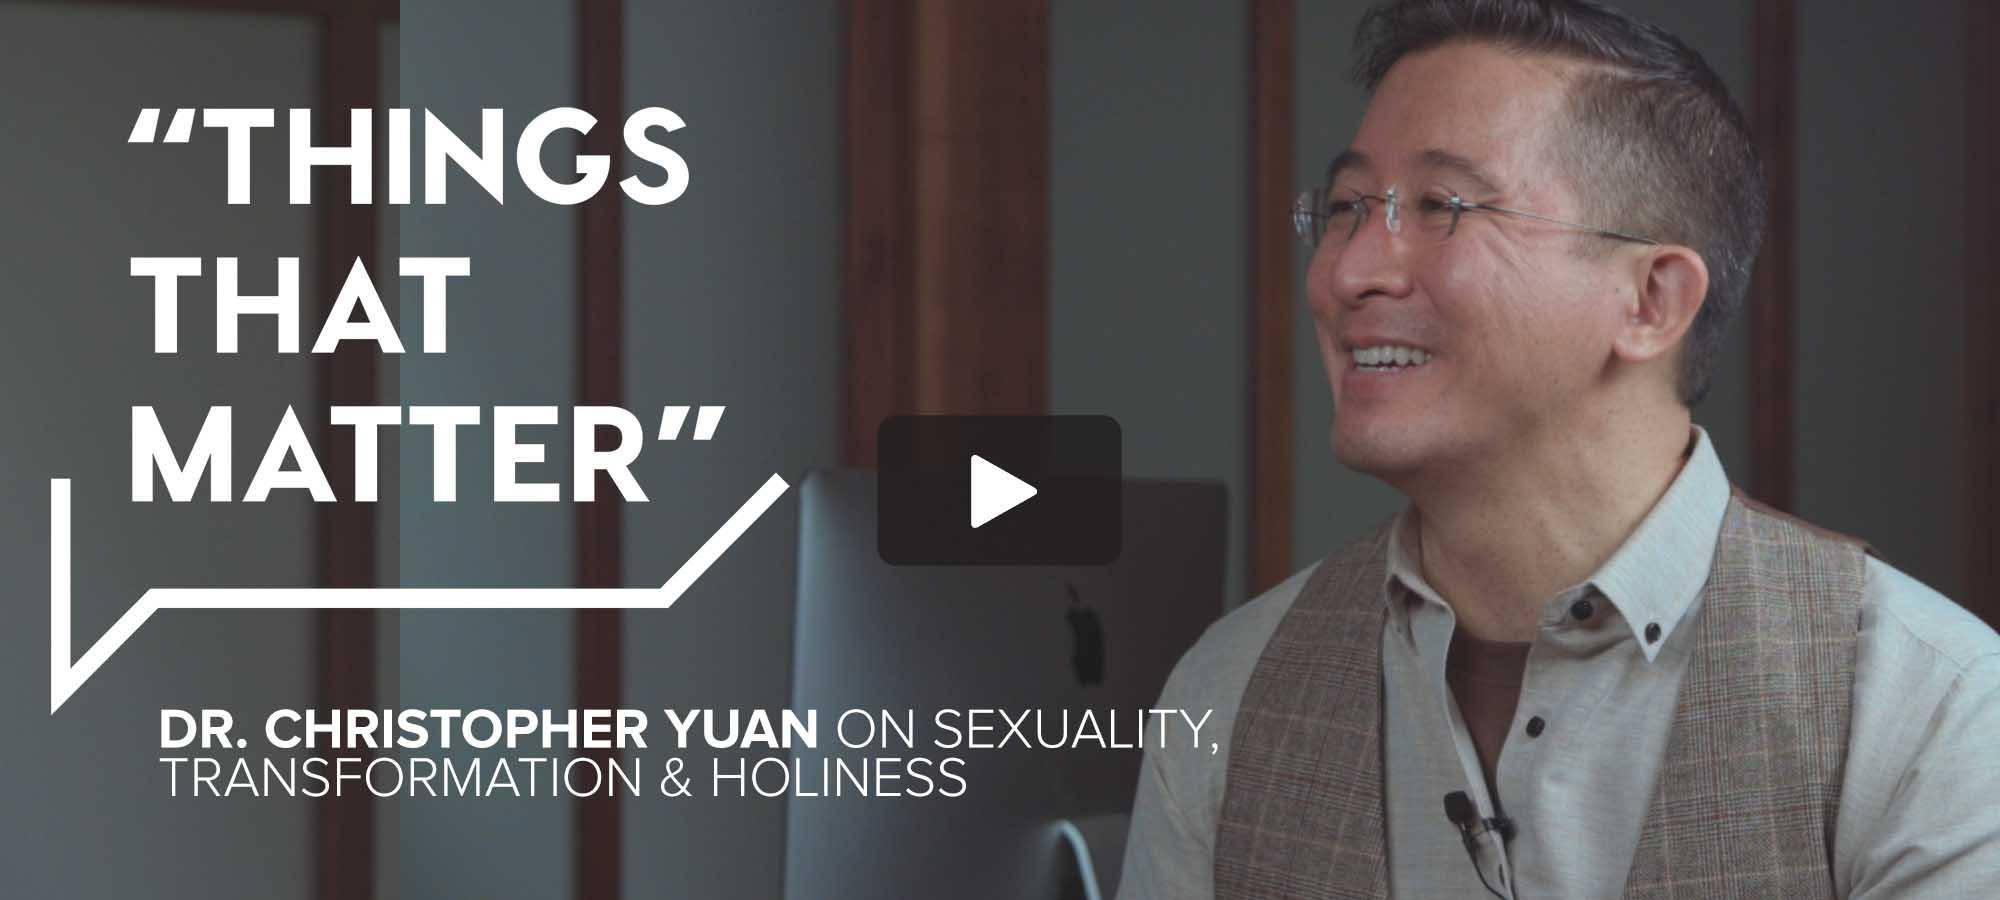 TTM S2 E5 - Dr. Christopher Yuan on Sexuality, Transformation & Holiness: Vault